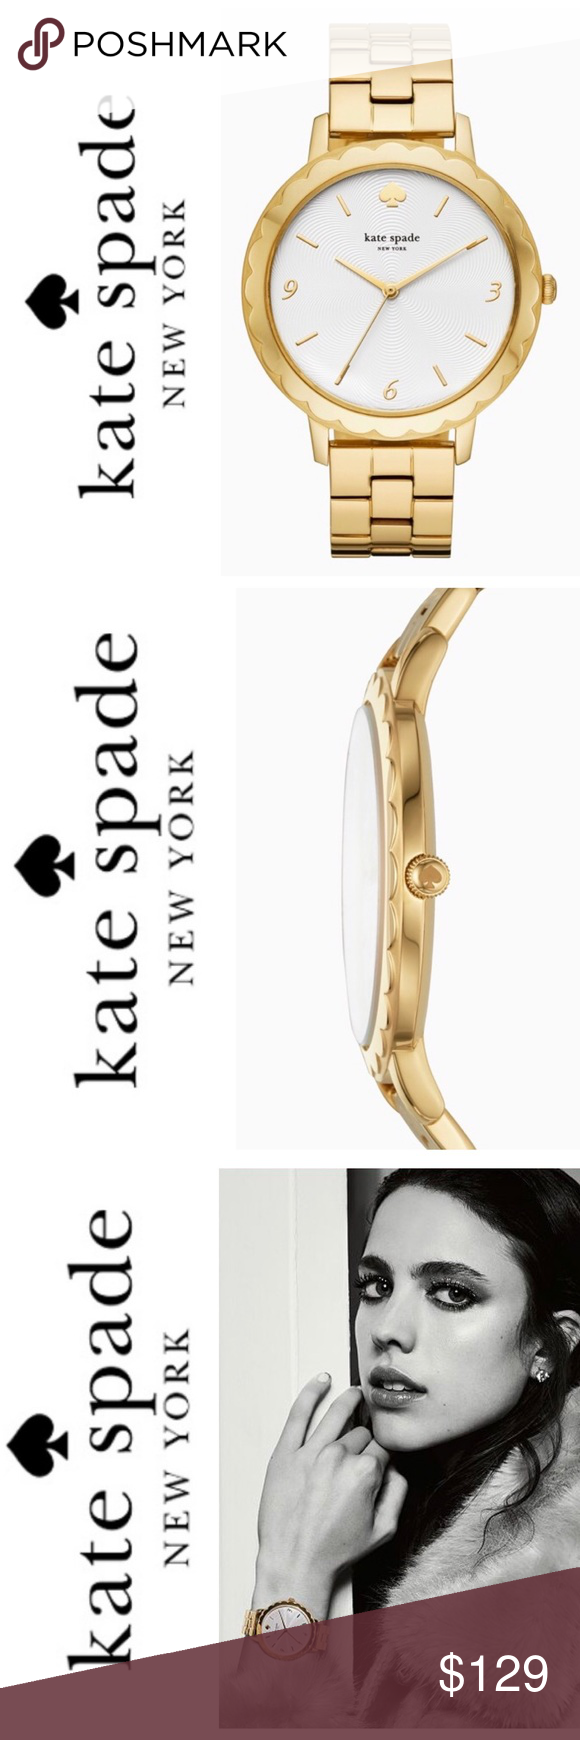 b9ee9d21e01 New Kate Spade morningside Gold Tone Watch happy hour takes on new meaning  with our spirited metro watch. crafted with sweet